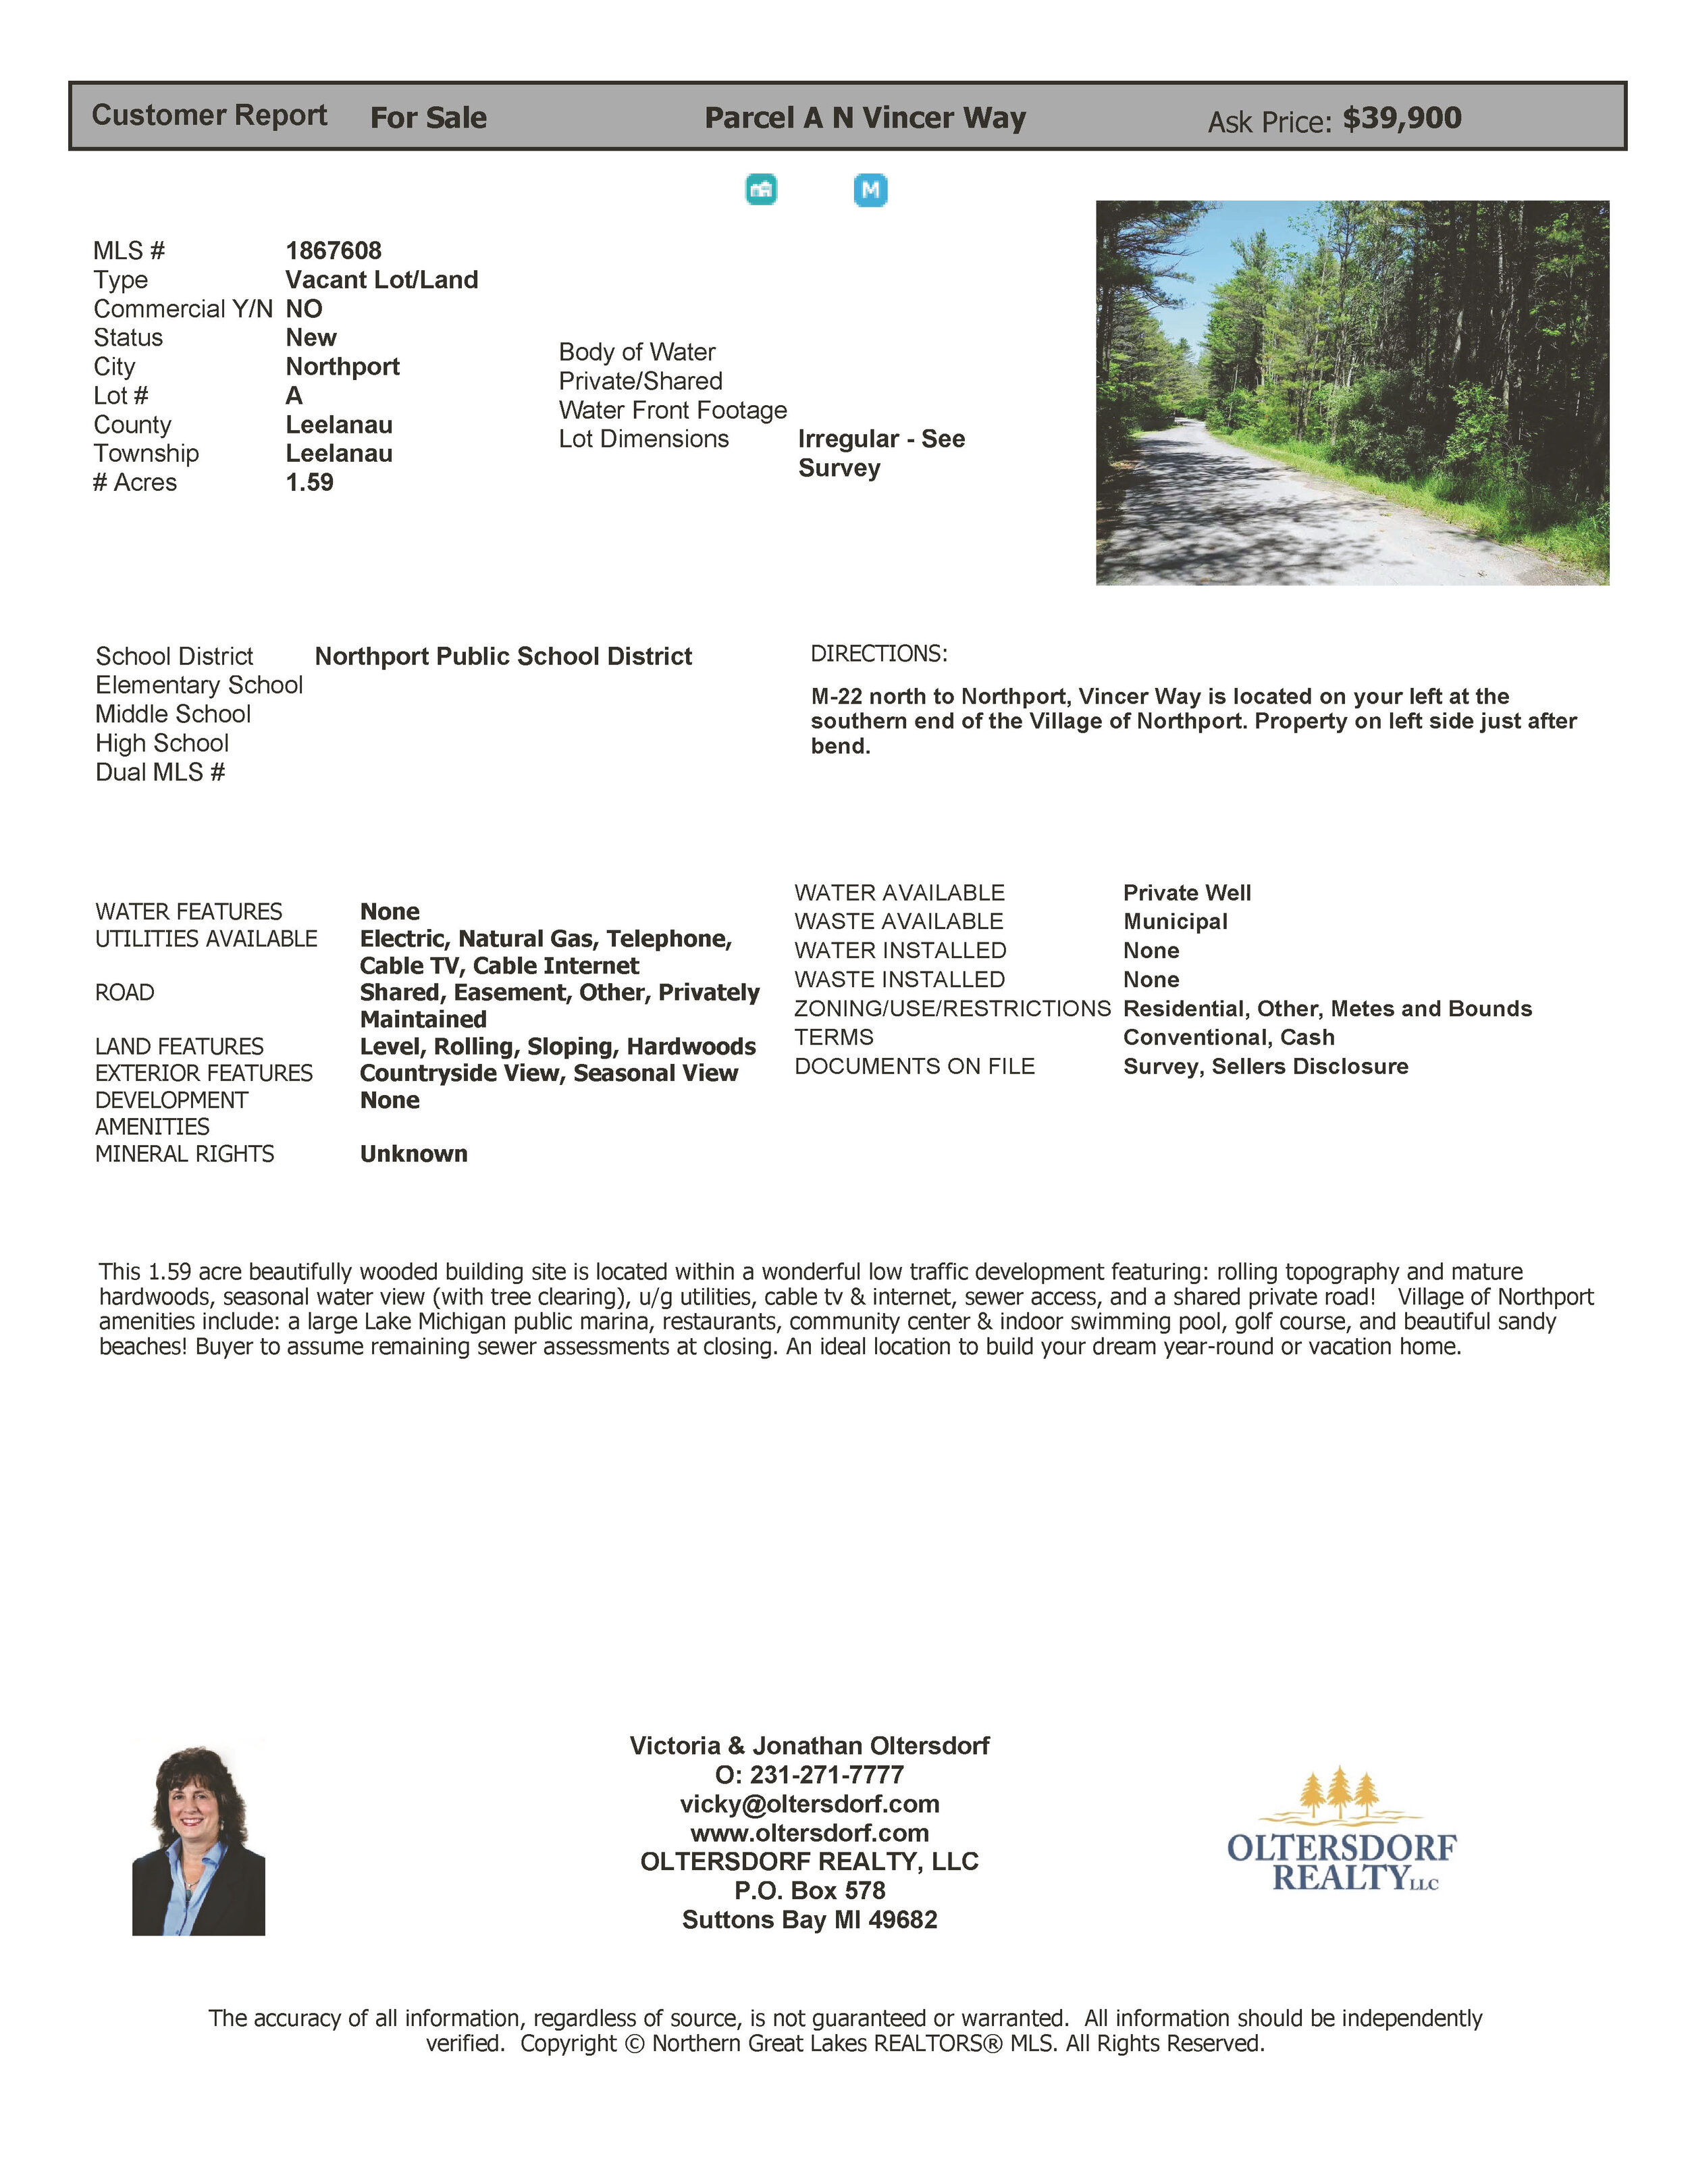 Parcel A - N Vincer Way, Northport - For Sale By Oltersdorf Realty LLC - Marketing Packet_Page_03.jpg